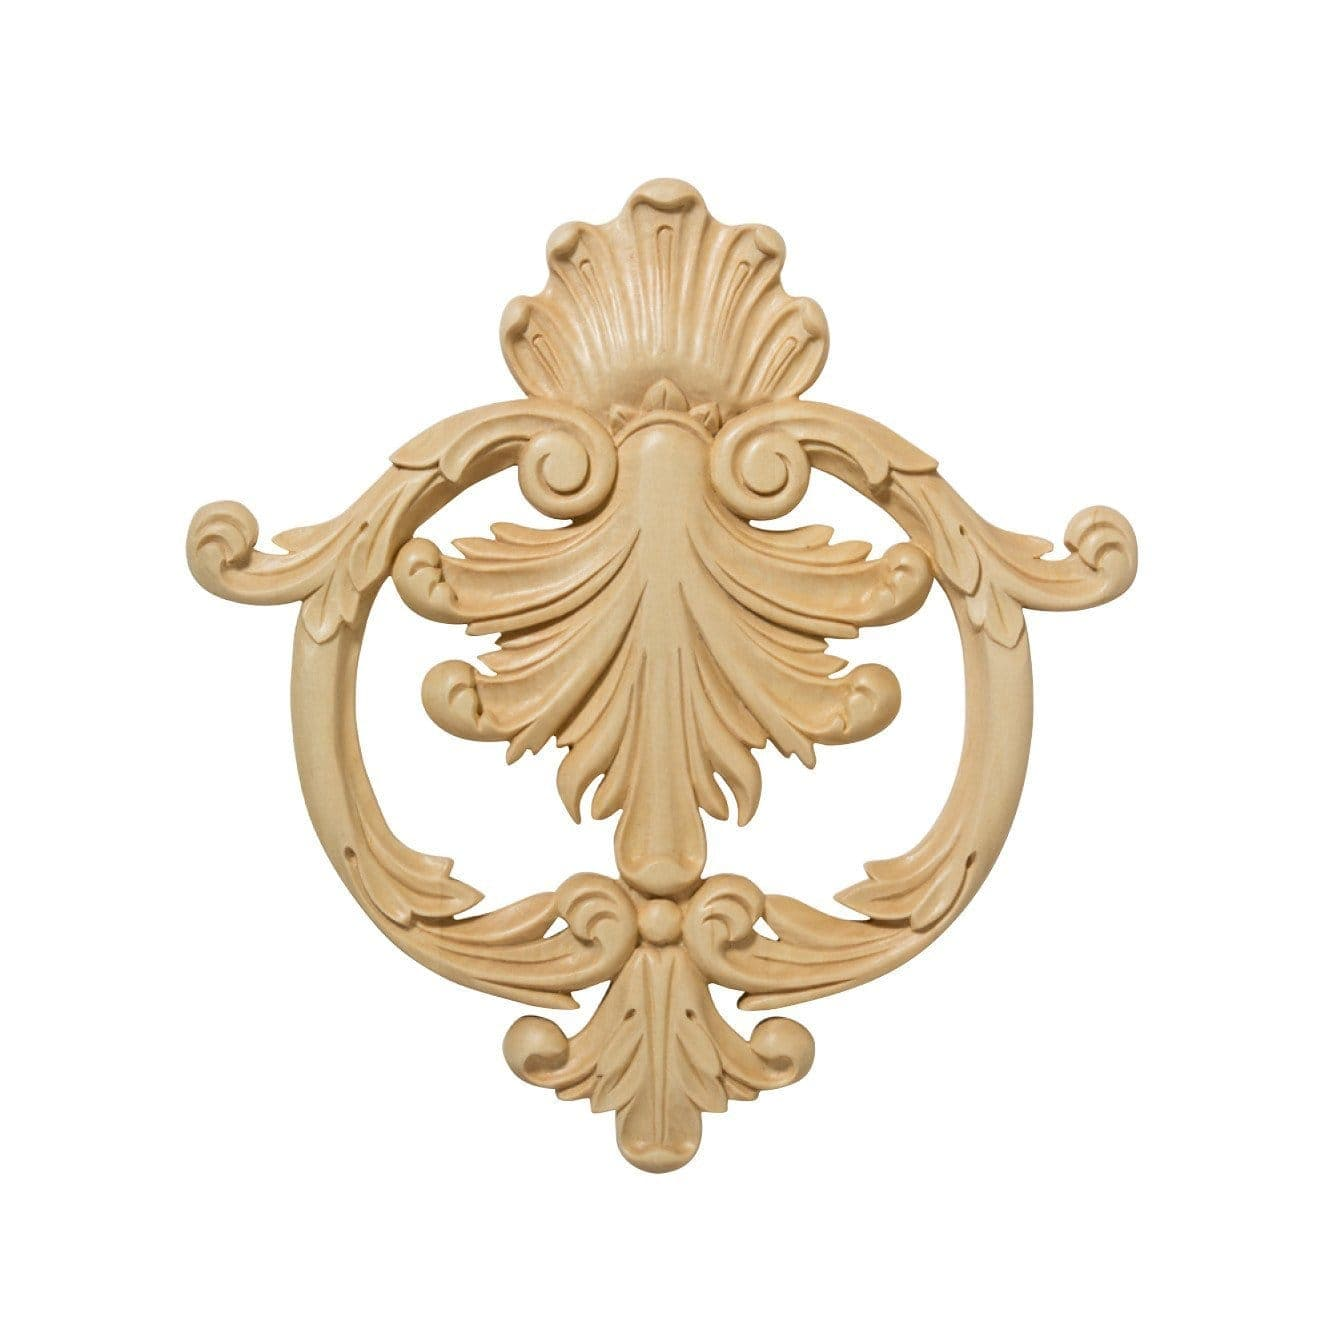 Small Ceiling Cartouche, 10 3/8w x 10 3/8h x 13/16d, Lindenwood